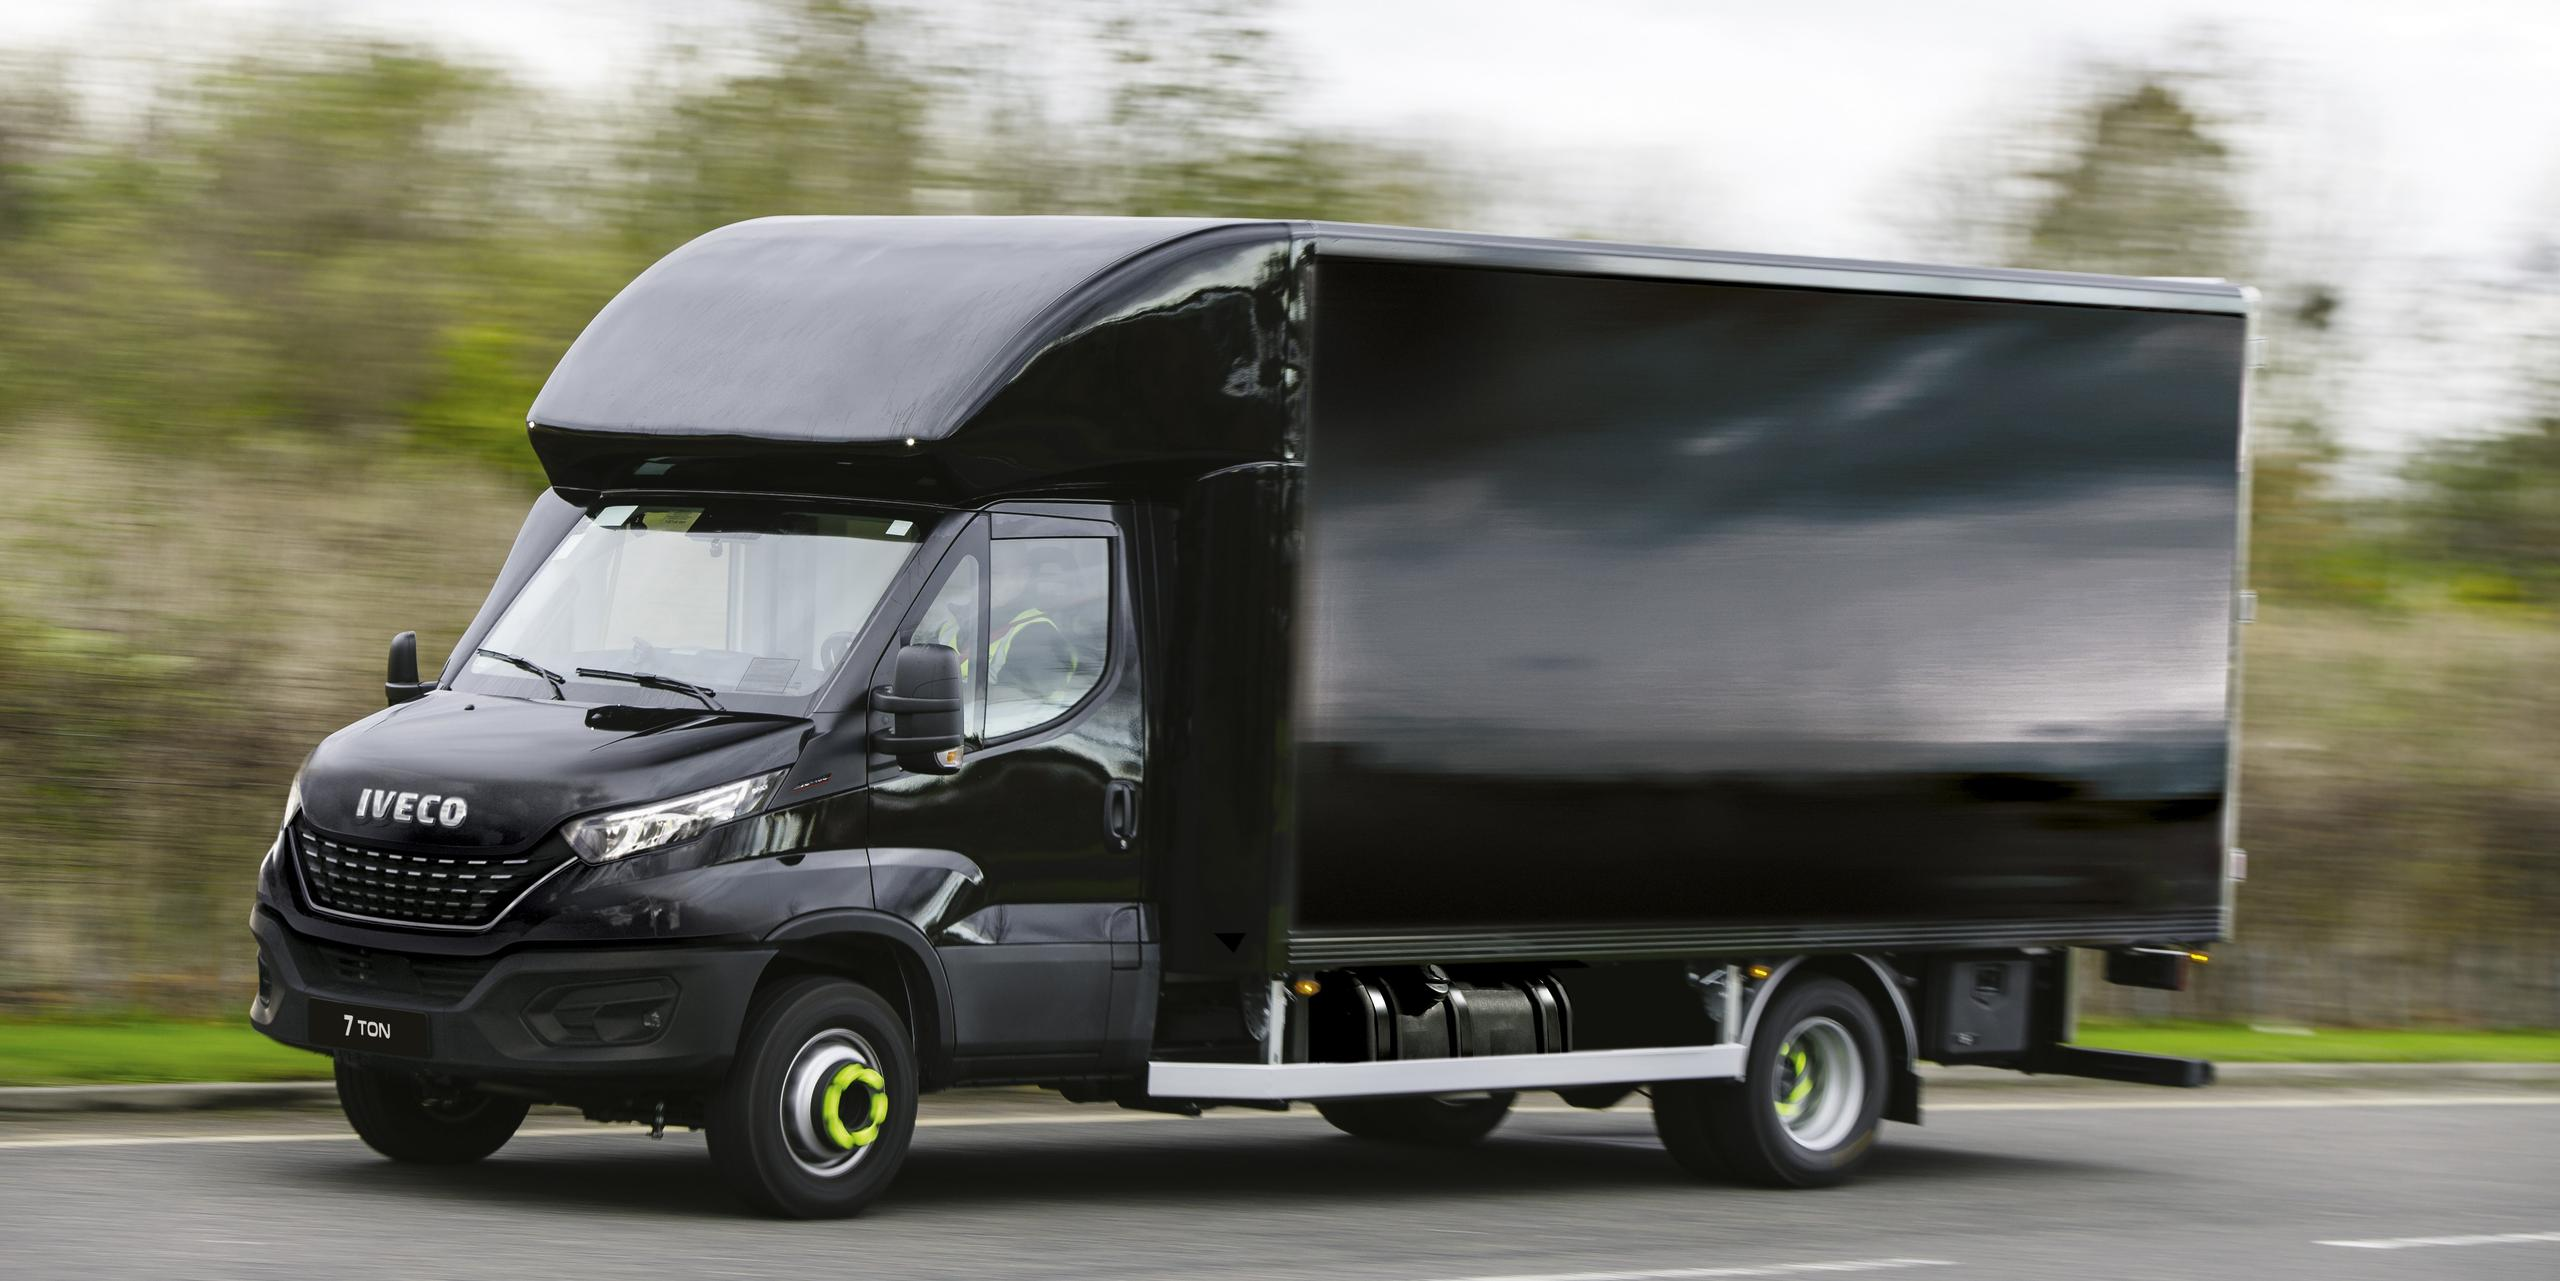 IVECO Daily 7-Tonne wins at leading awards